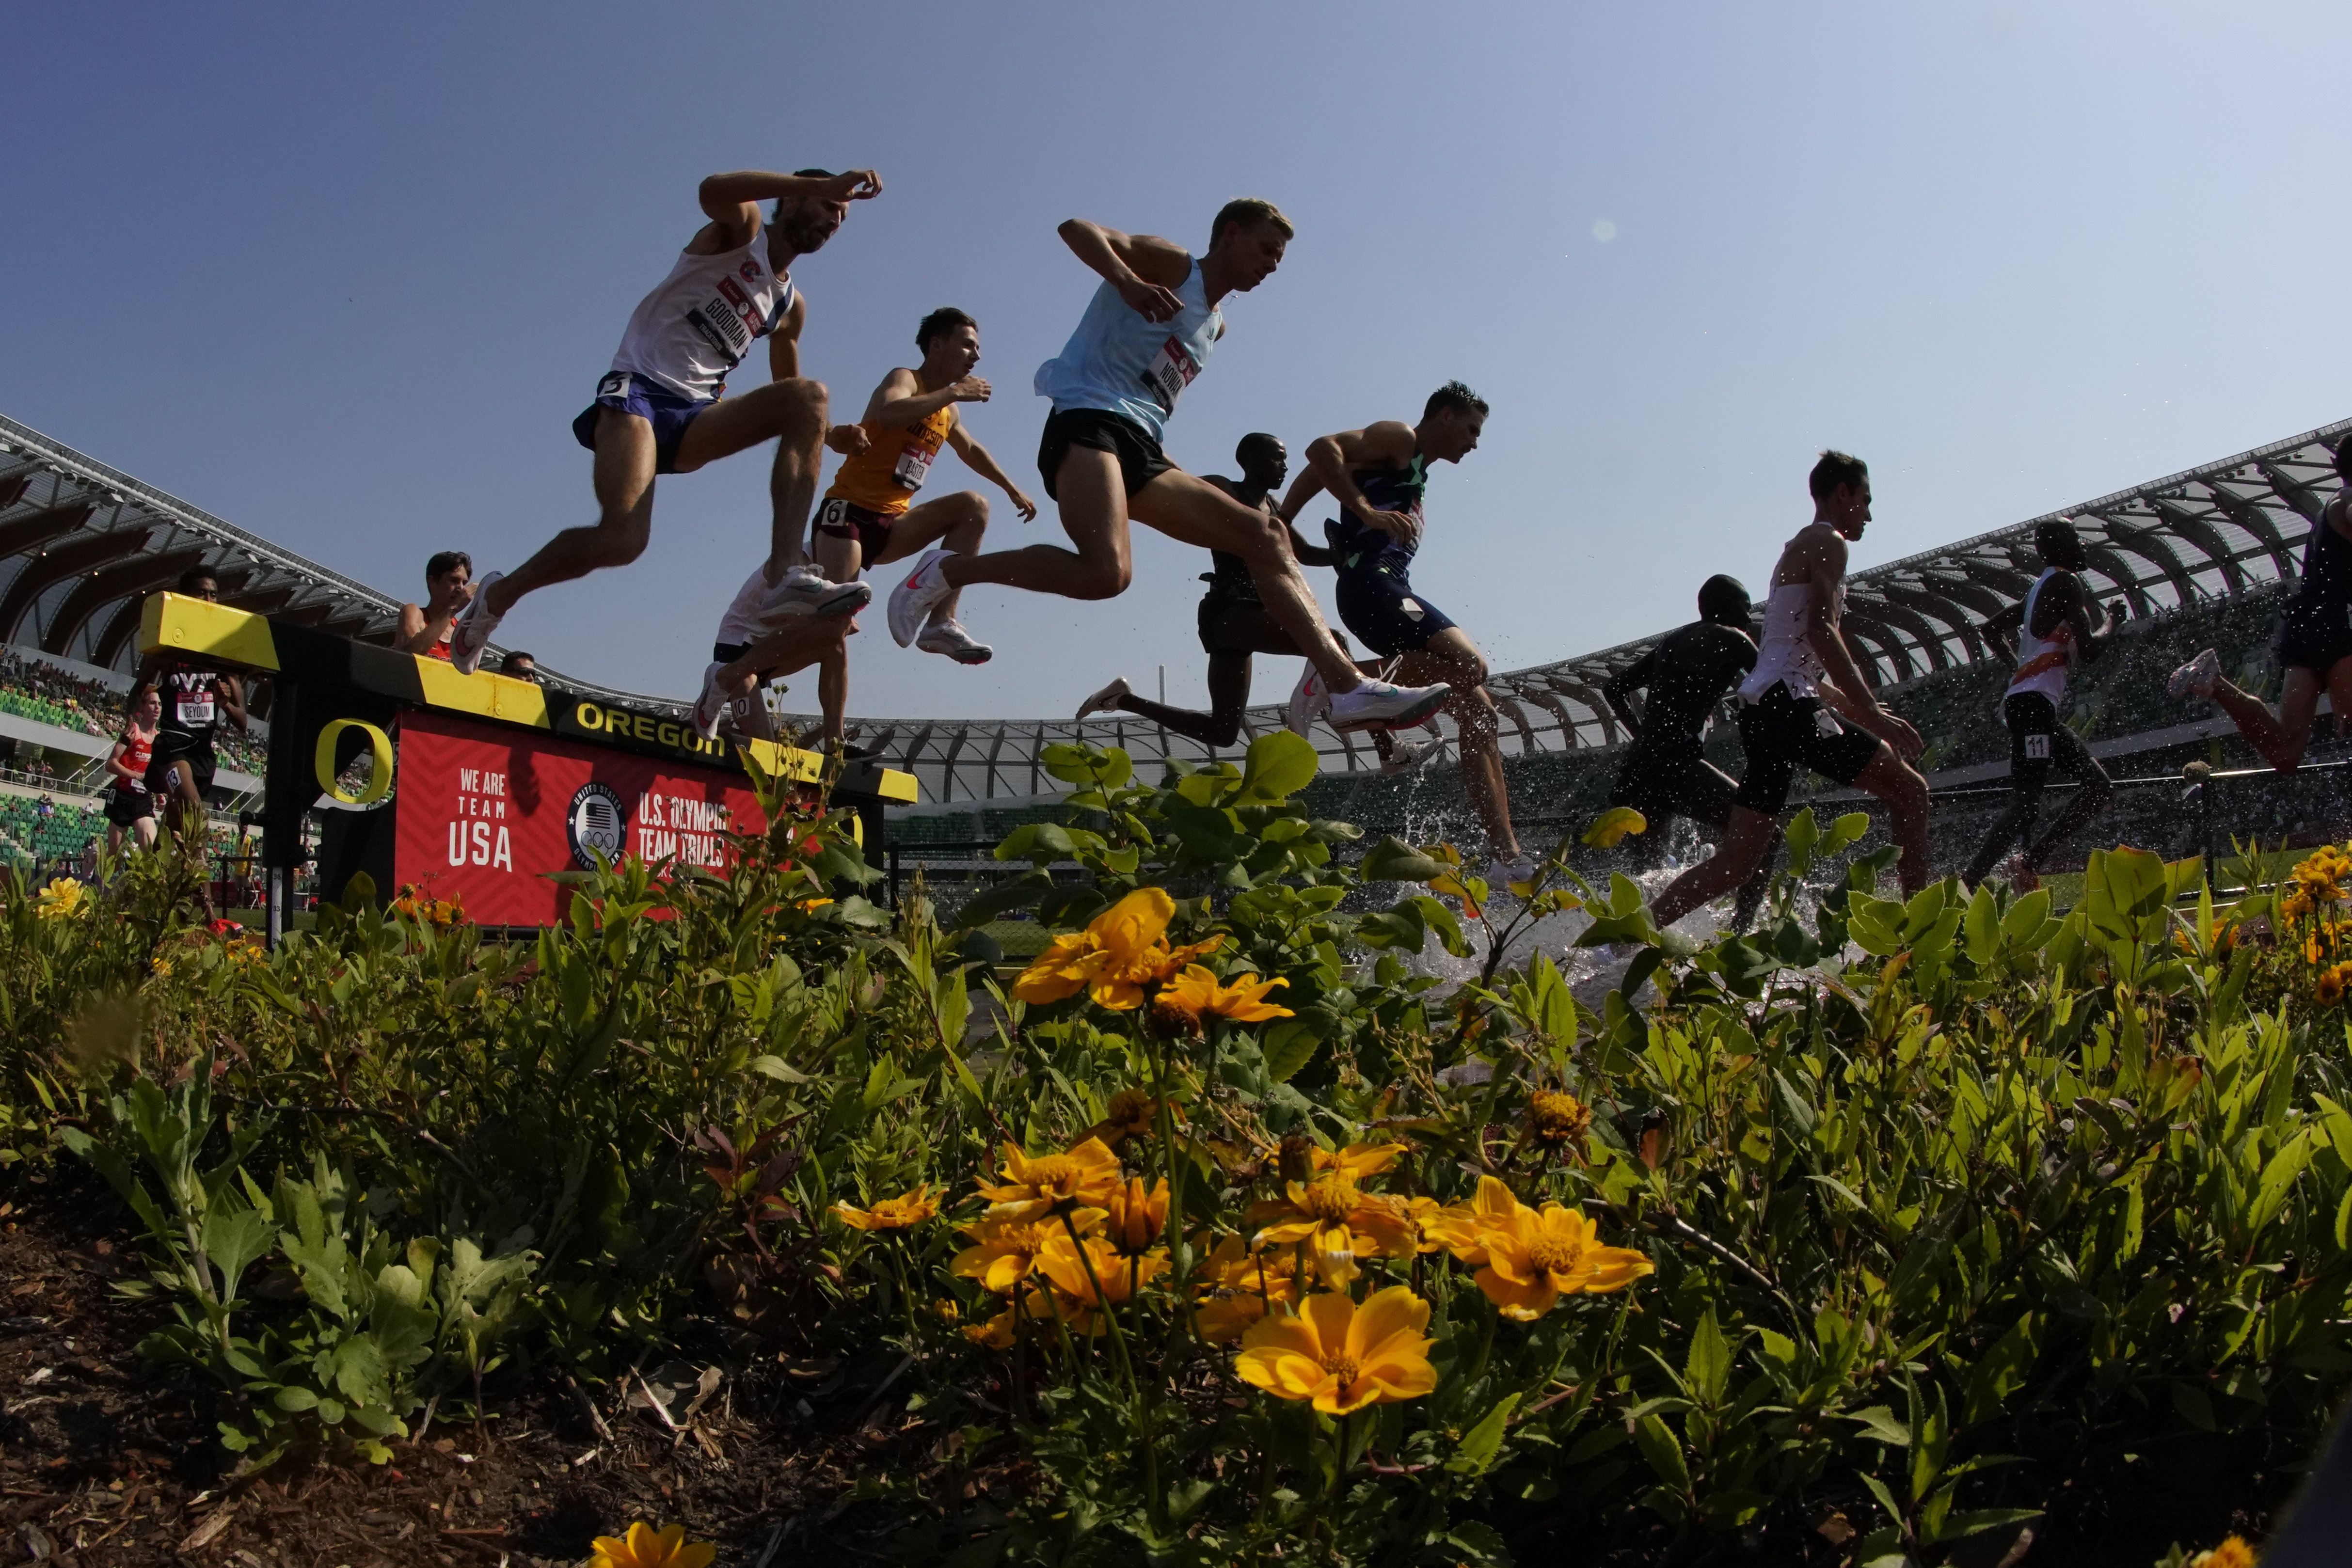 Runners compete in the men's 3,000-meter steeplechase at the U.S. Olympic Track and Field Trials.